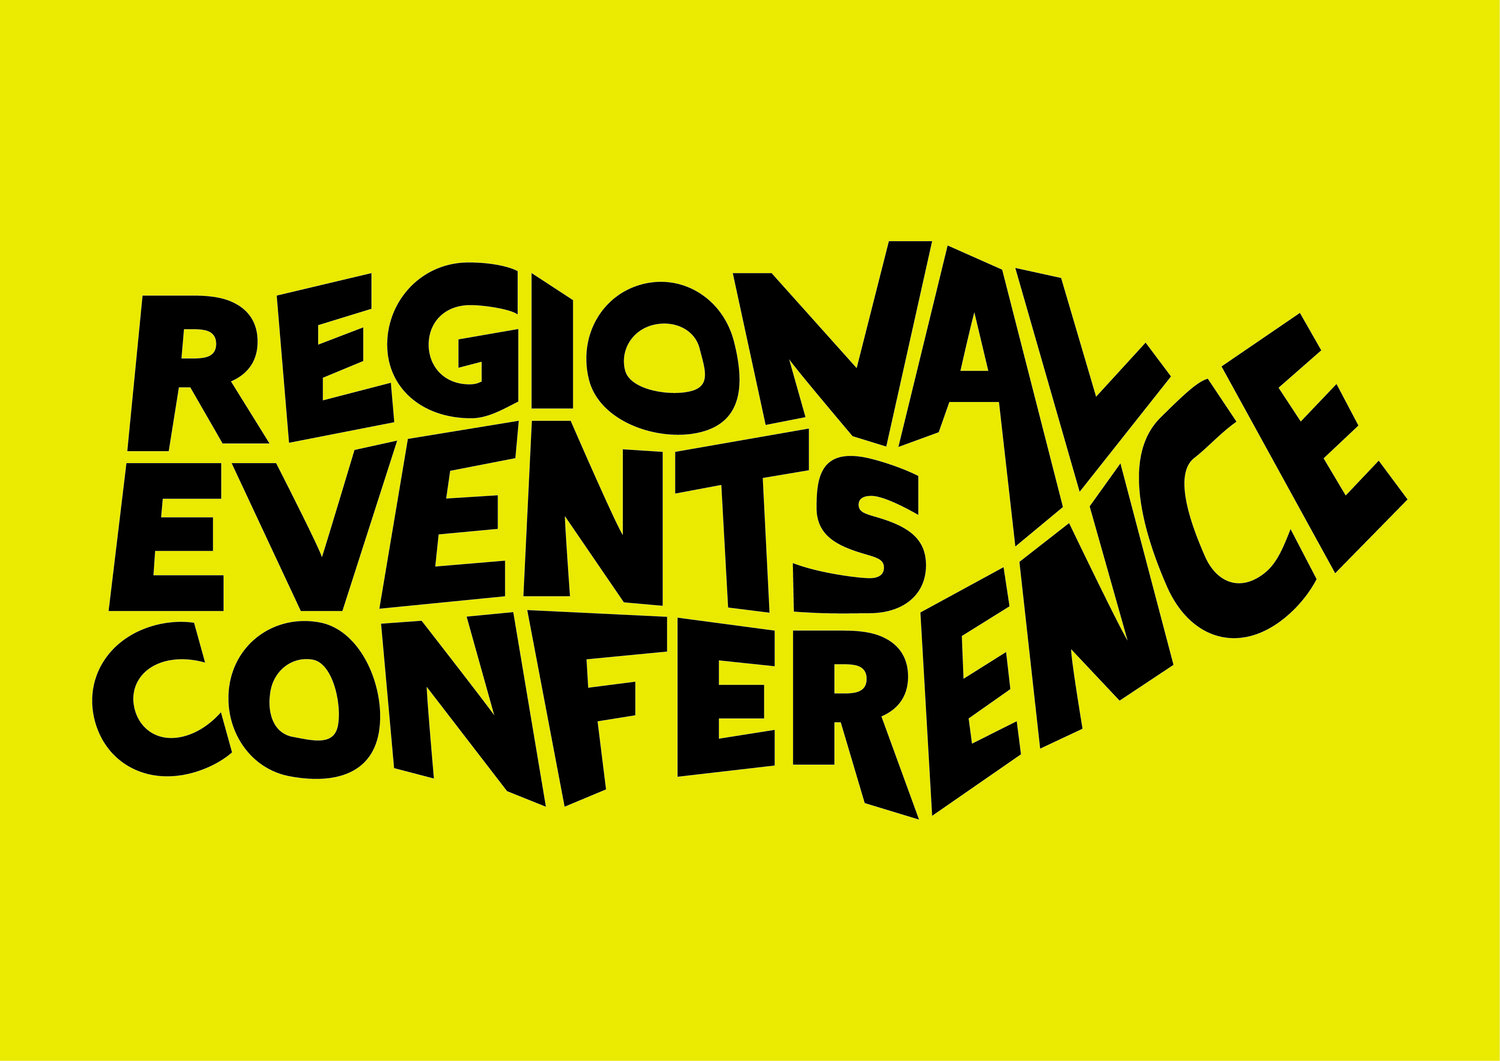 Regional Events Conference | The only regional event for regional event people